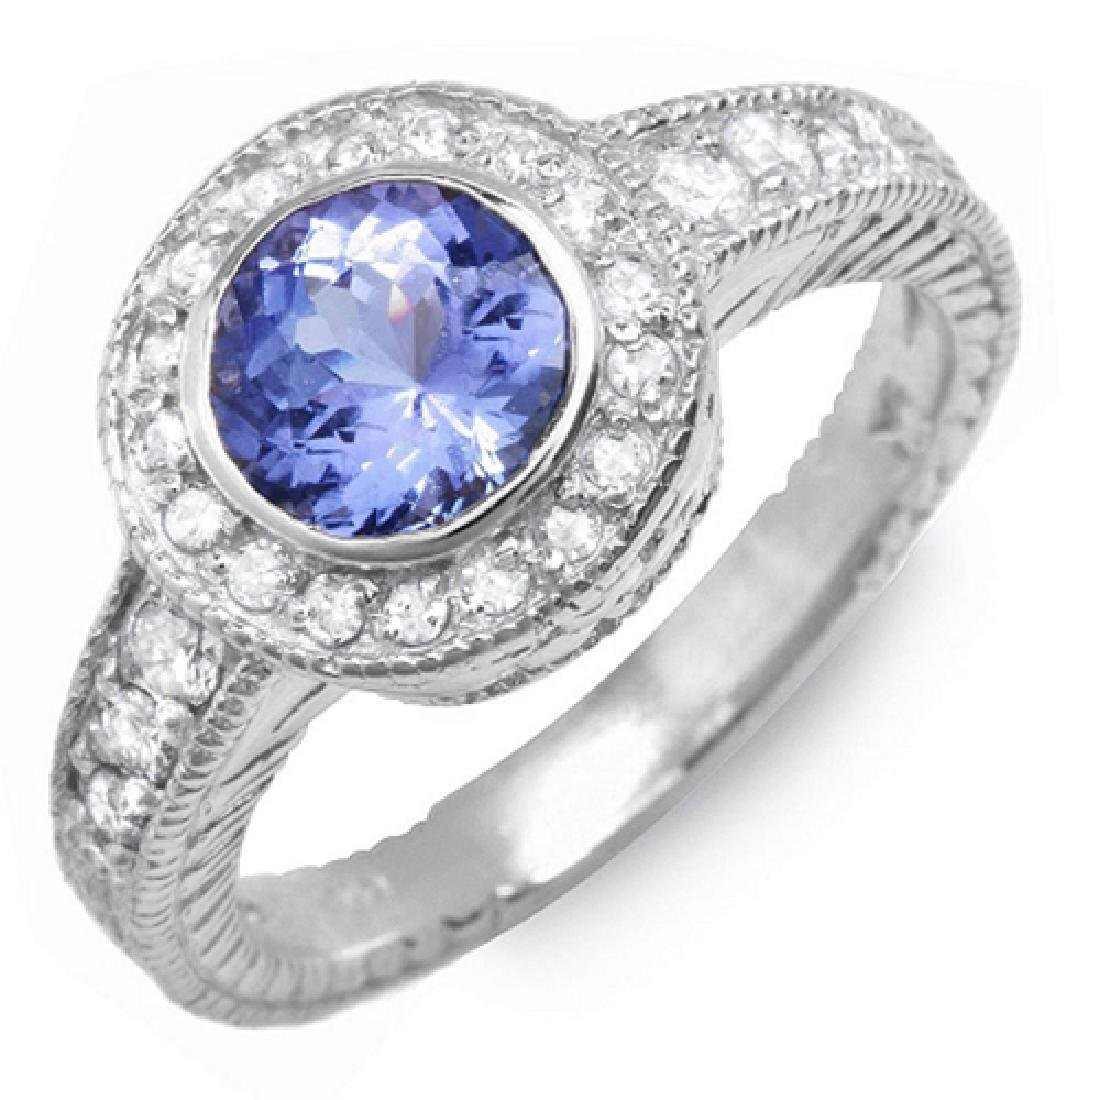 1.30 Carat Natural Tanzanite 18K Solid White Gold